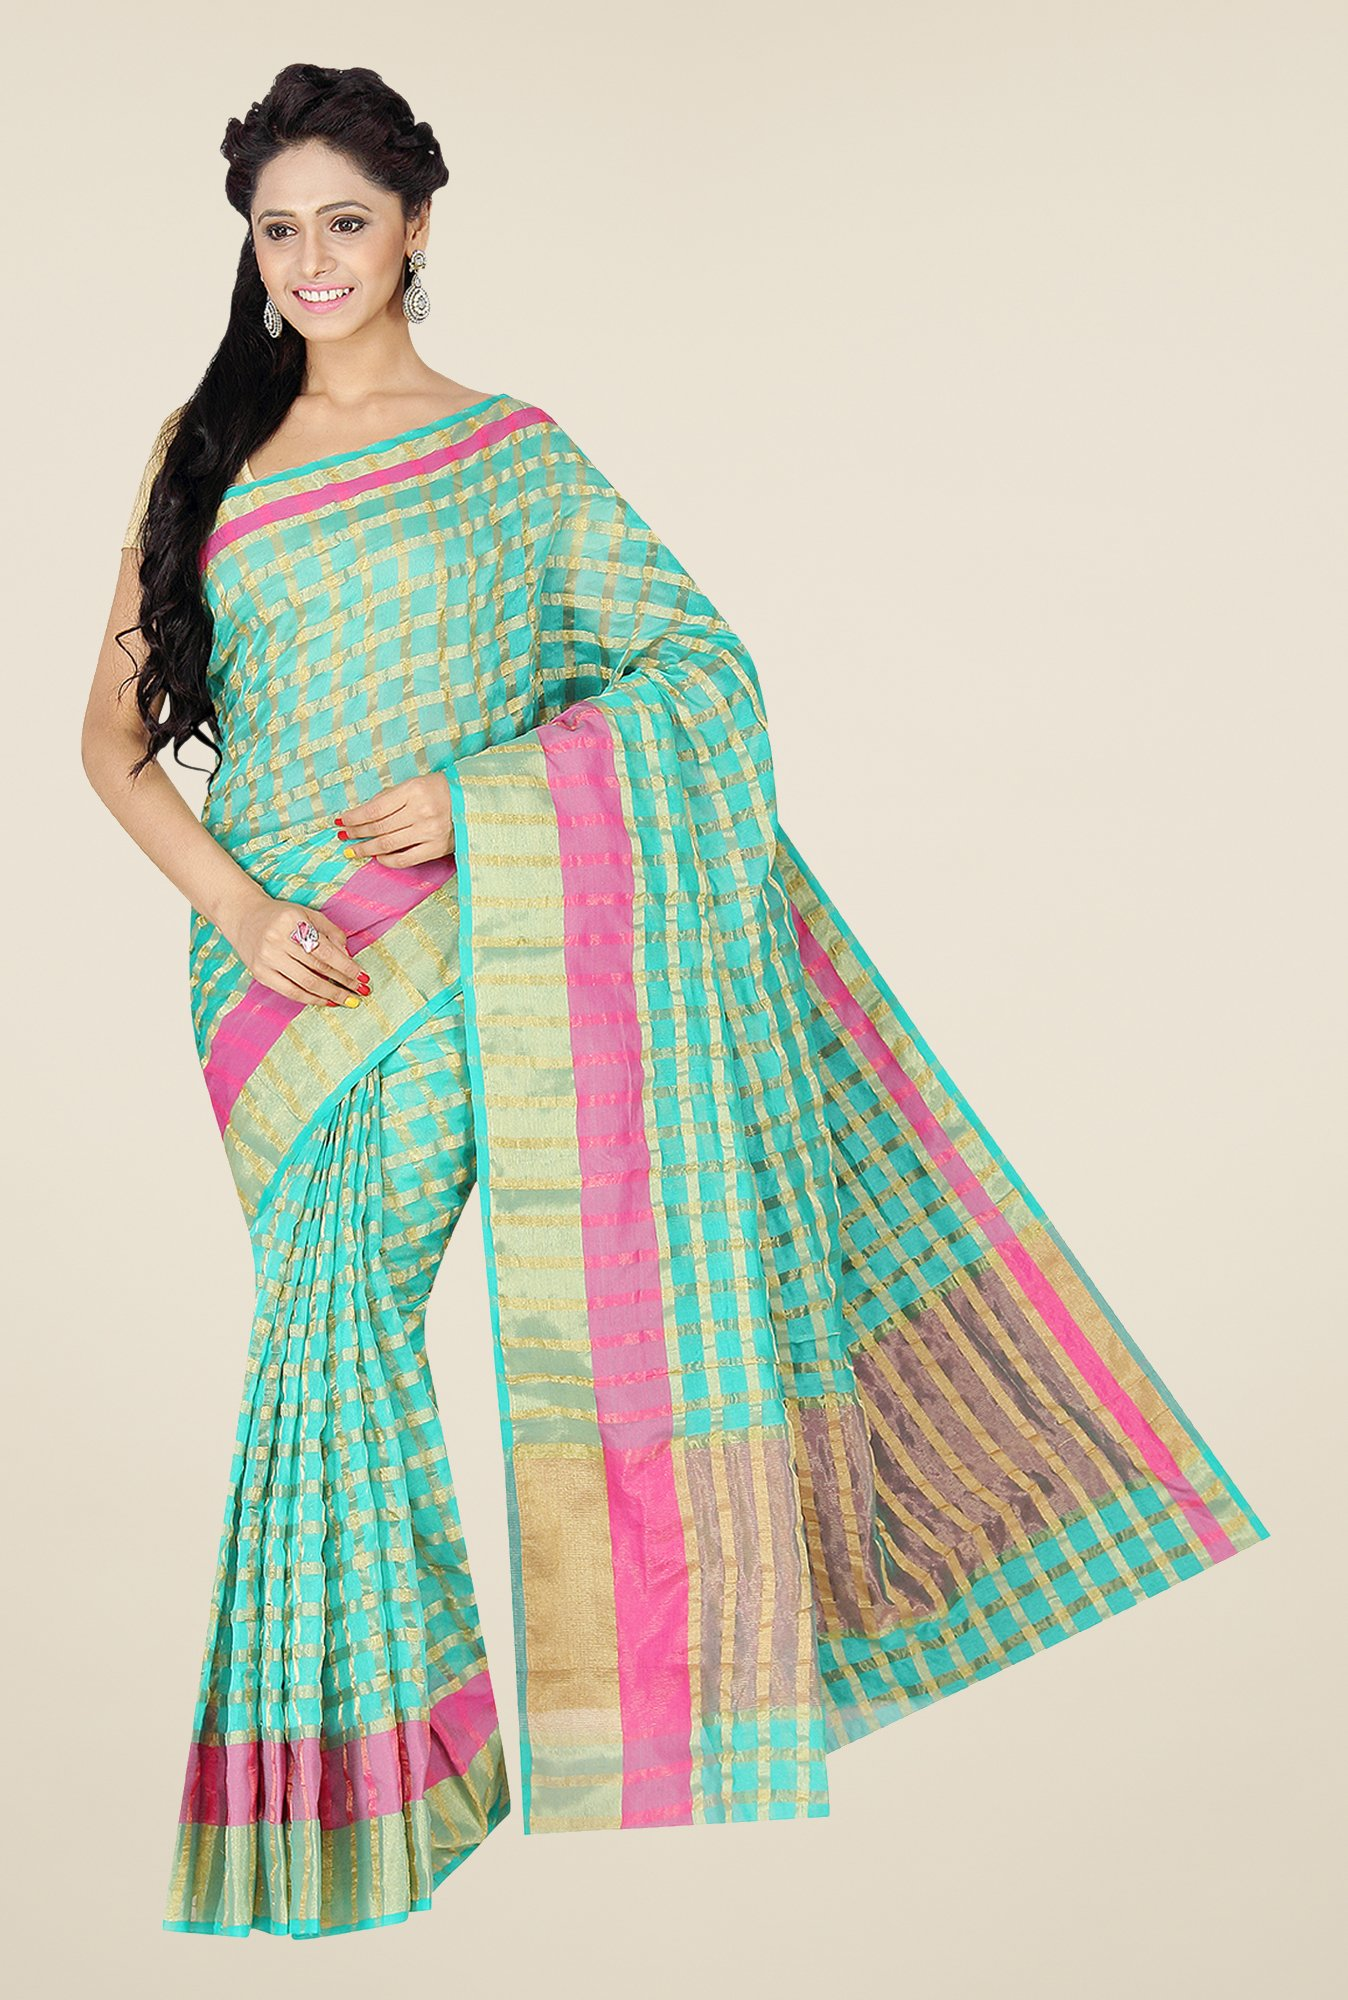 Pavecha's Green Banarasi Cotton Silk Checks Saree